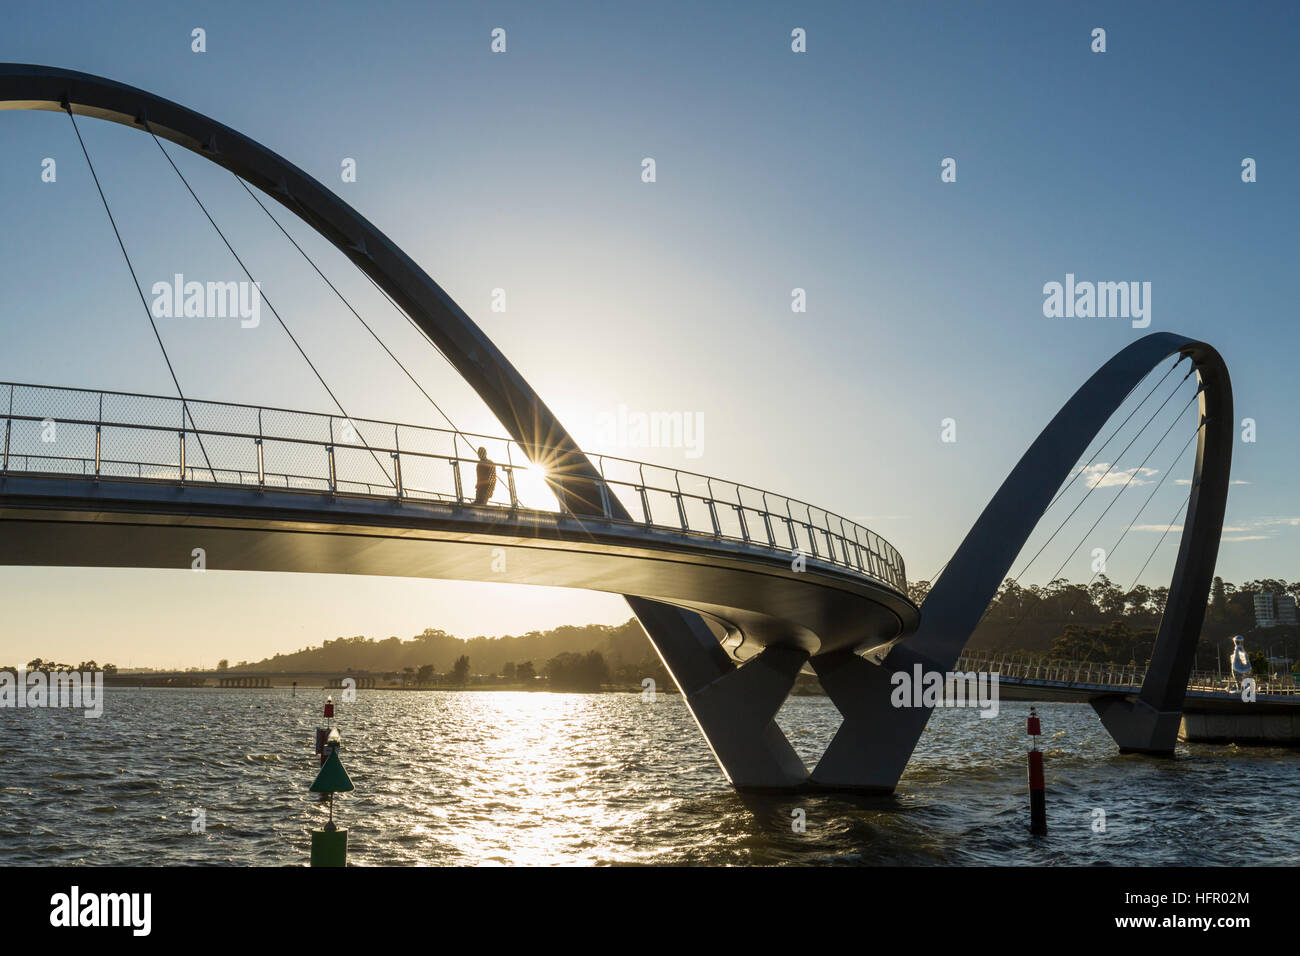 The Elizabeth Quay pedestrian bridge on the Swan River at sunset, Perth, Western Australia, Australia - Stock Image